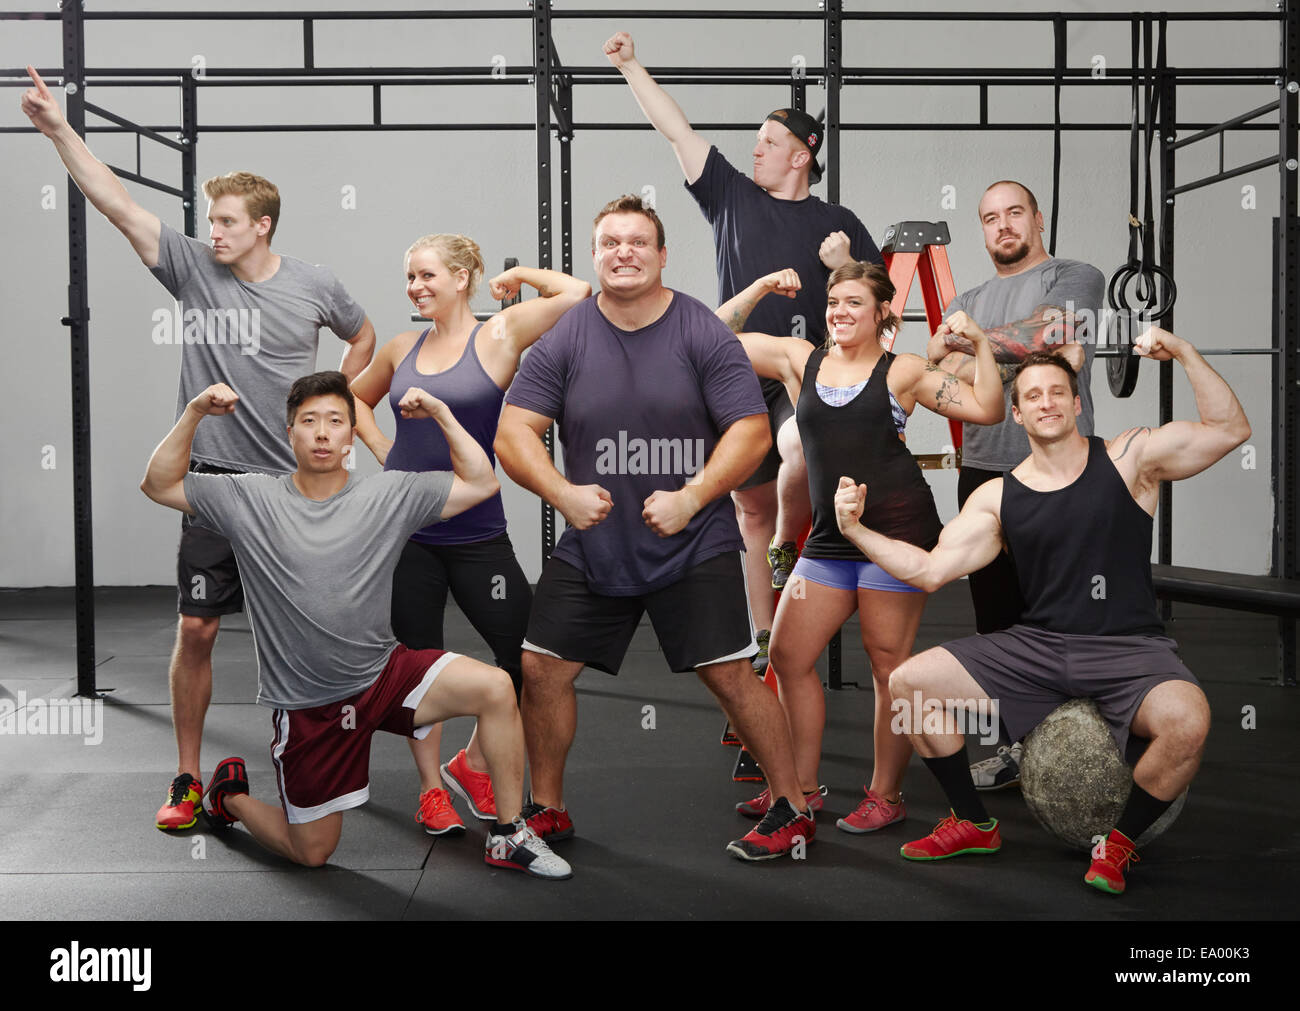 Portrait de huit personnes flexing muscles in gym Photo Stock